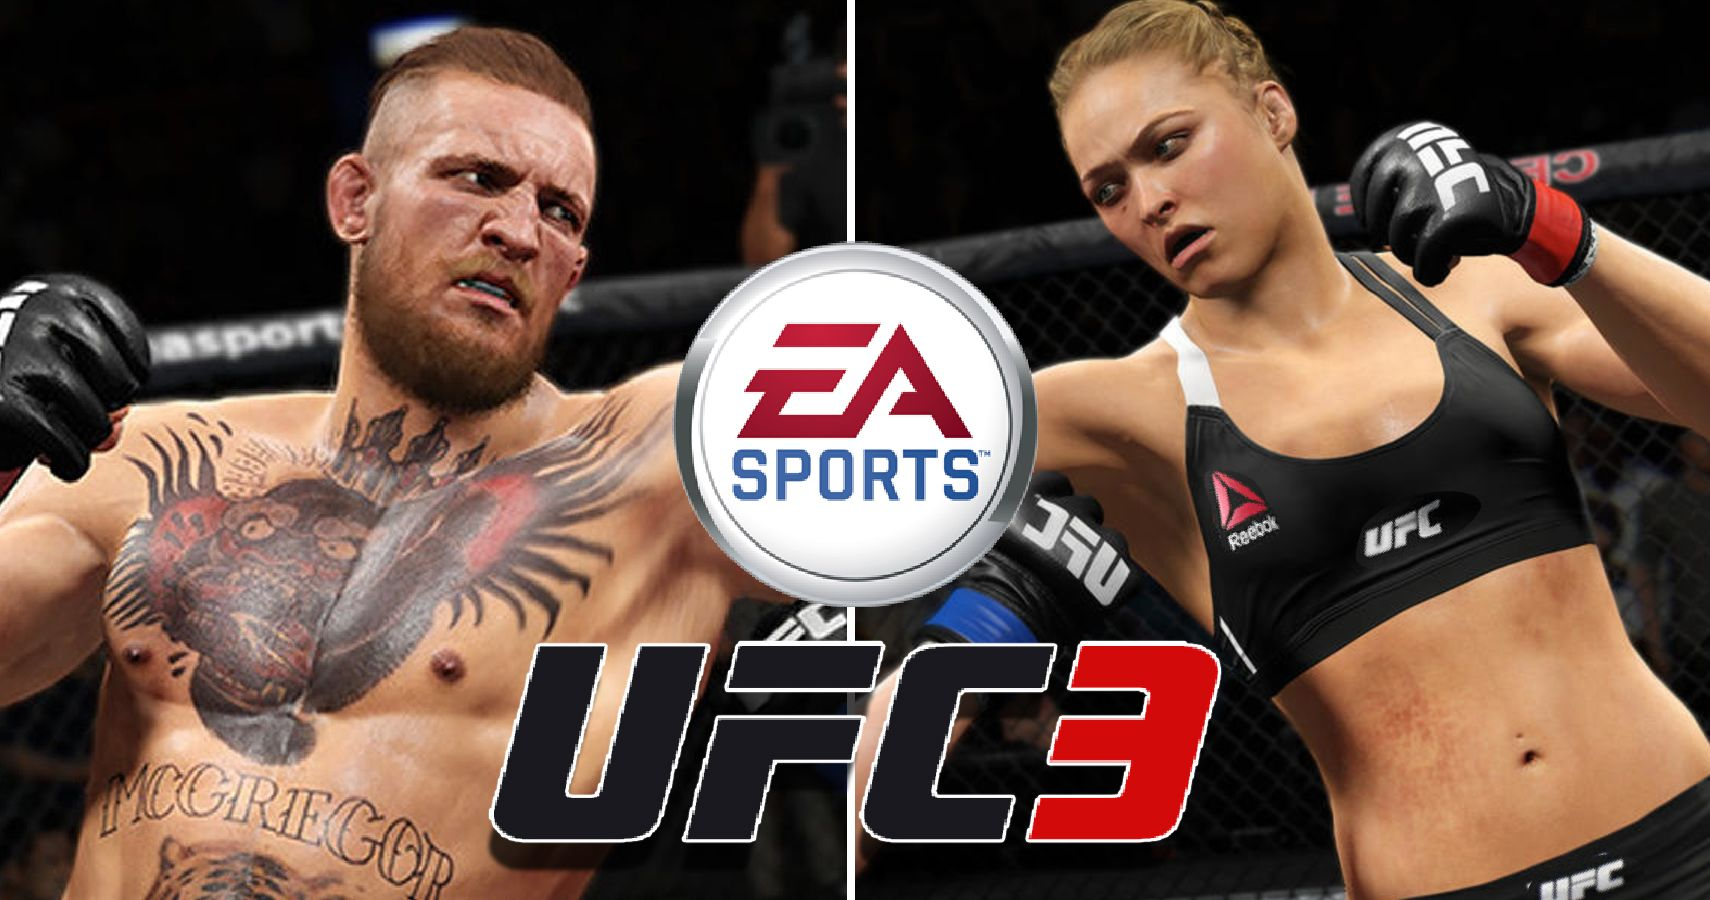 The Best And Worst Things About Ufc 3 Thegamer